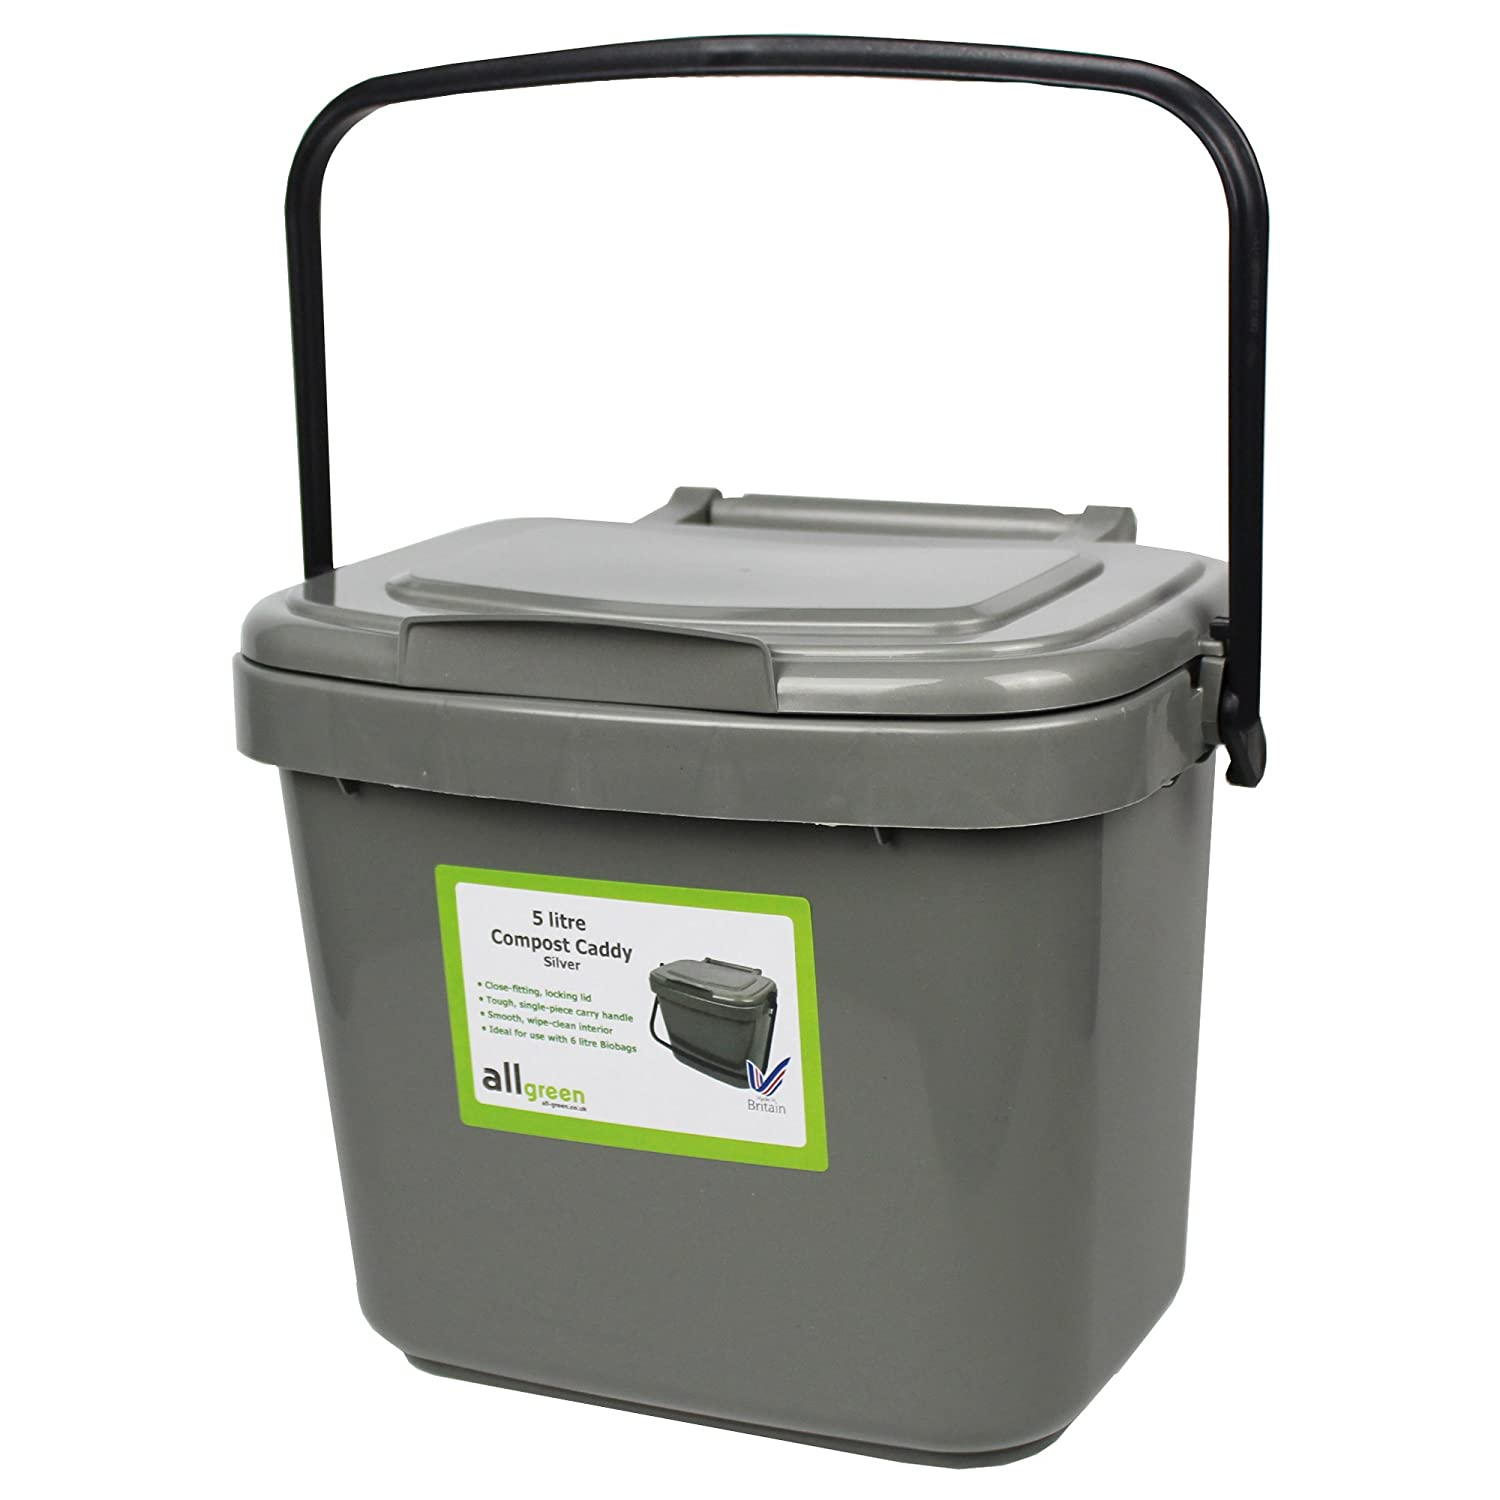 All-Green 5 Litre Plastic Kitchen Compost Caddy, Silver/ Grey ...